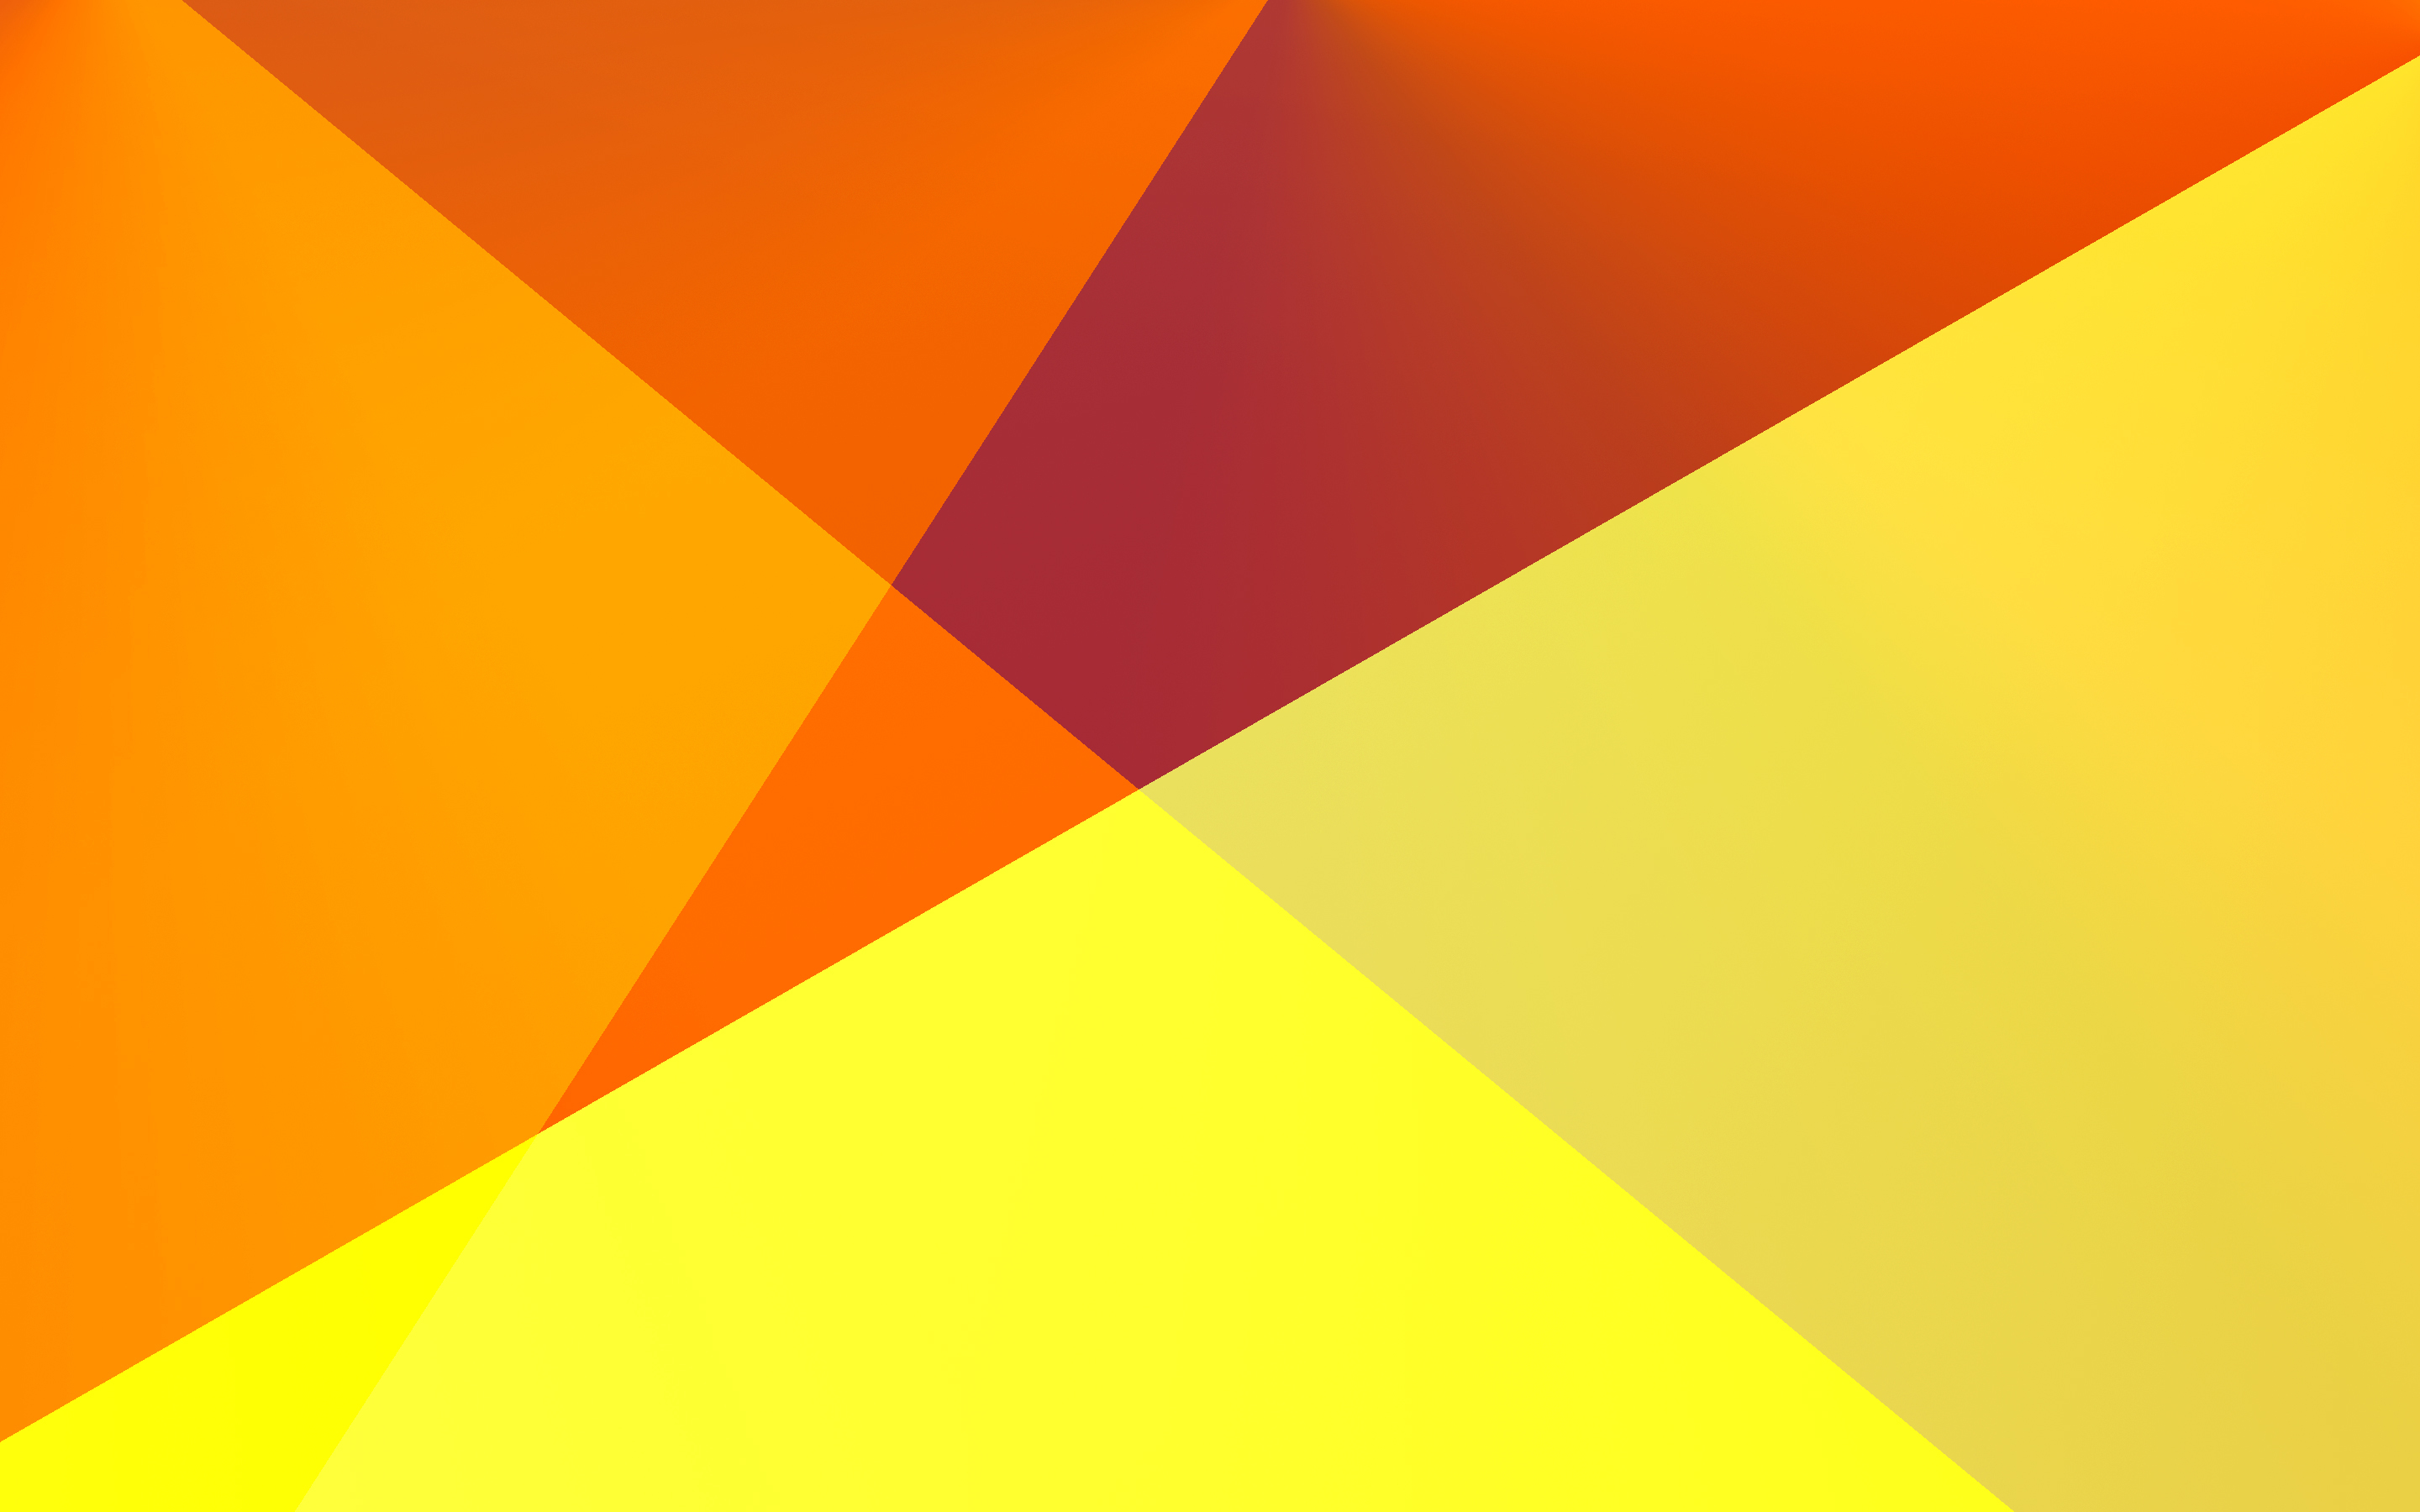 79 Orange HD Wallpapers | Backgrounds - Wallpaper Abyss